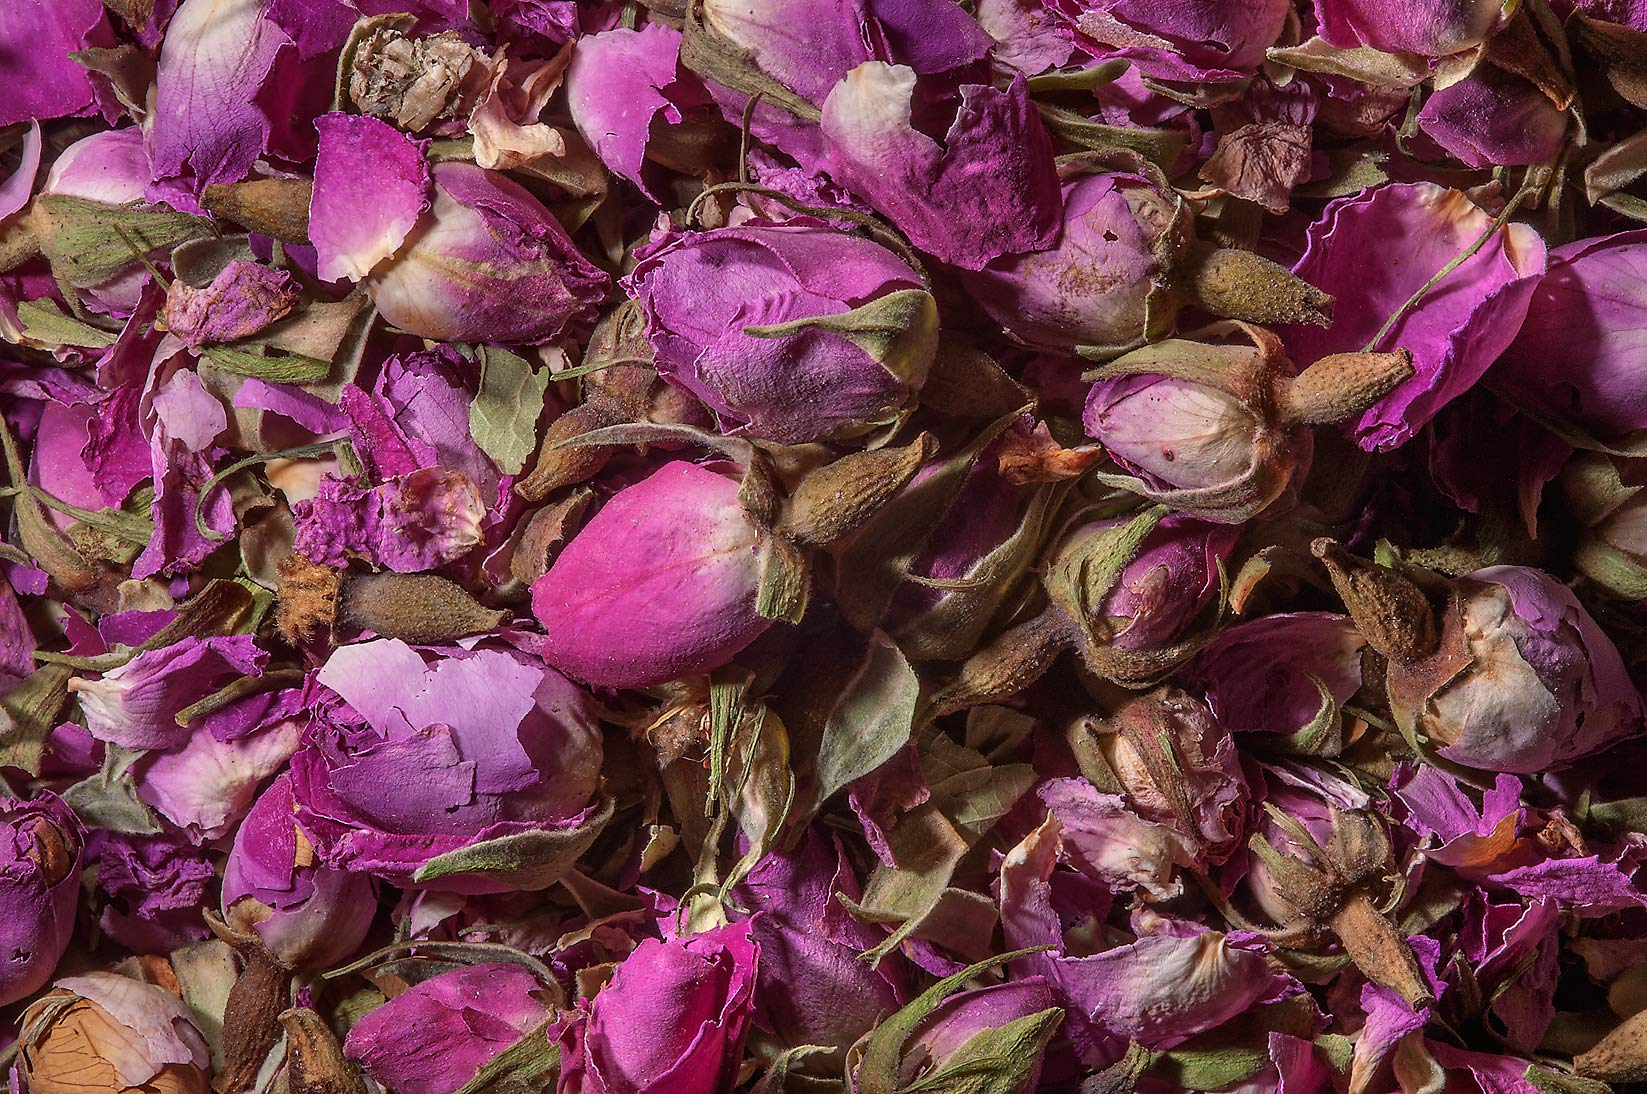 Dry rose buds and petals in Souq Waqif (Old Market). Doha, Qatar